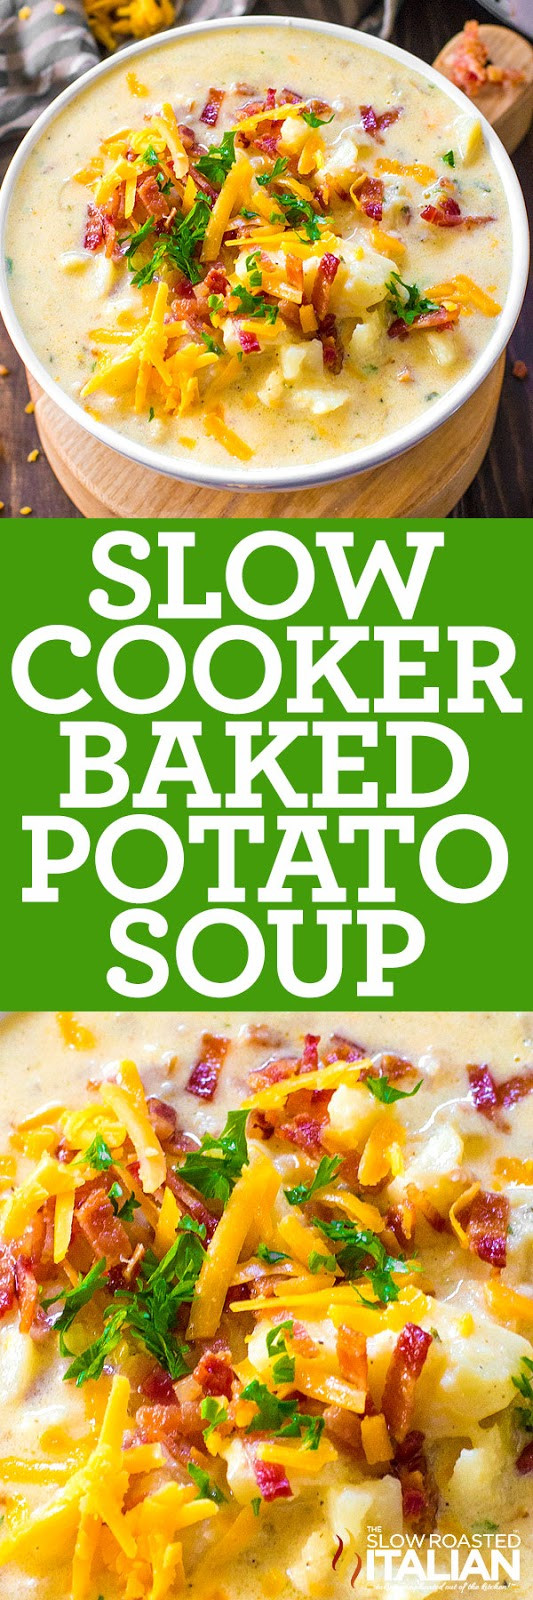 Potato Soup Slow Cooker  Slow Cooker Potato Soup With Video